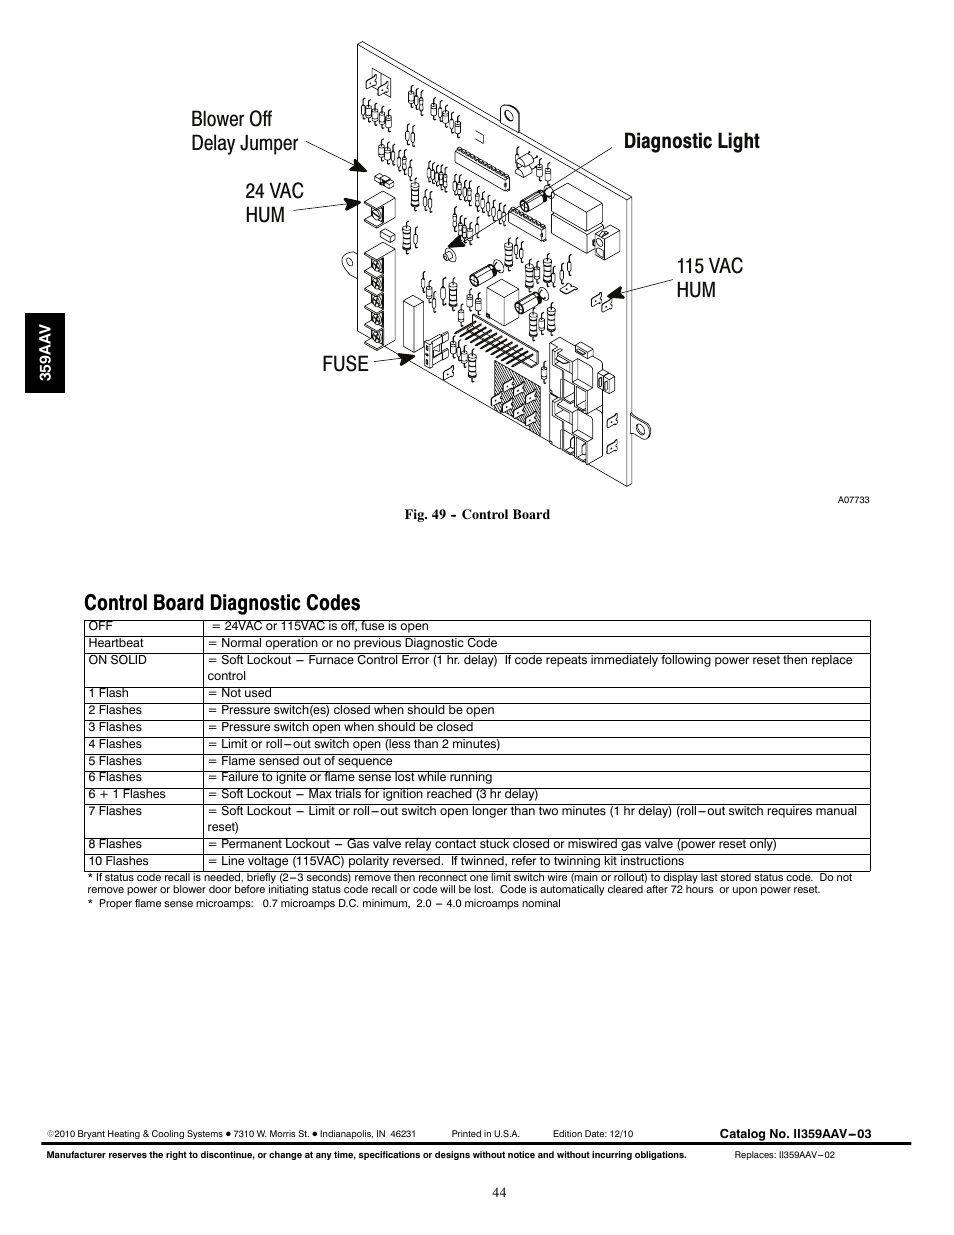 Control Board Diagnostic Codes Bryant 4 Way Multipoise 359aav User Furnace Wiring Diagram Manual Page 44